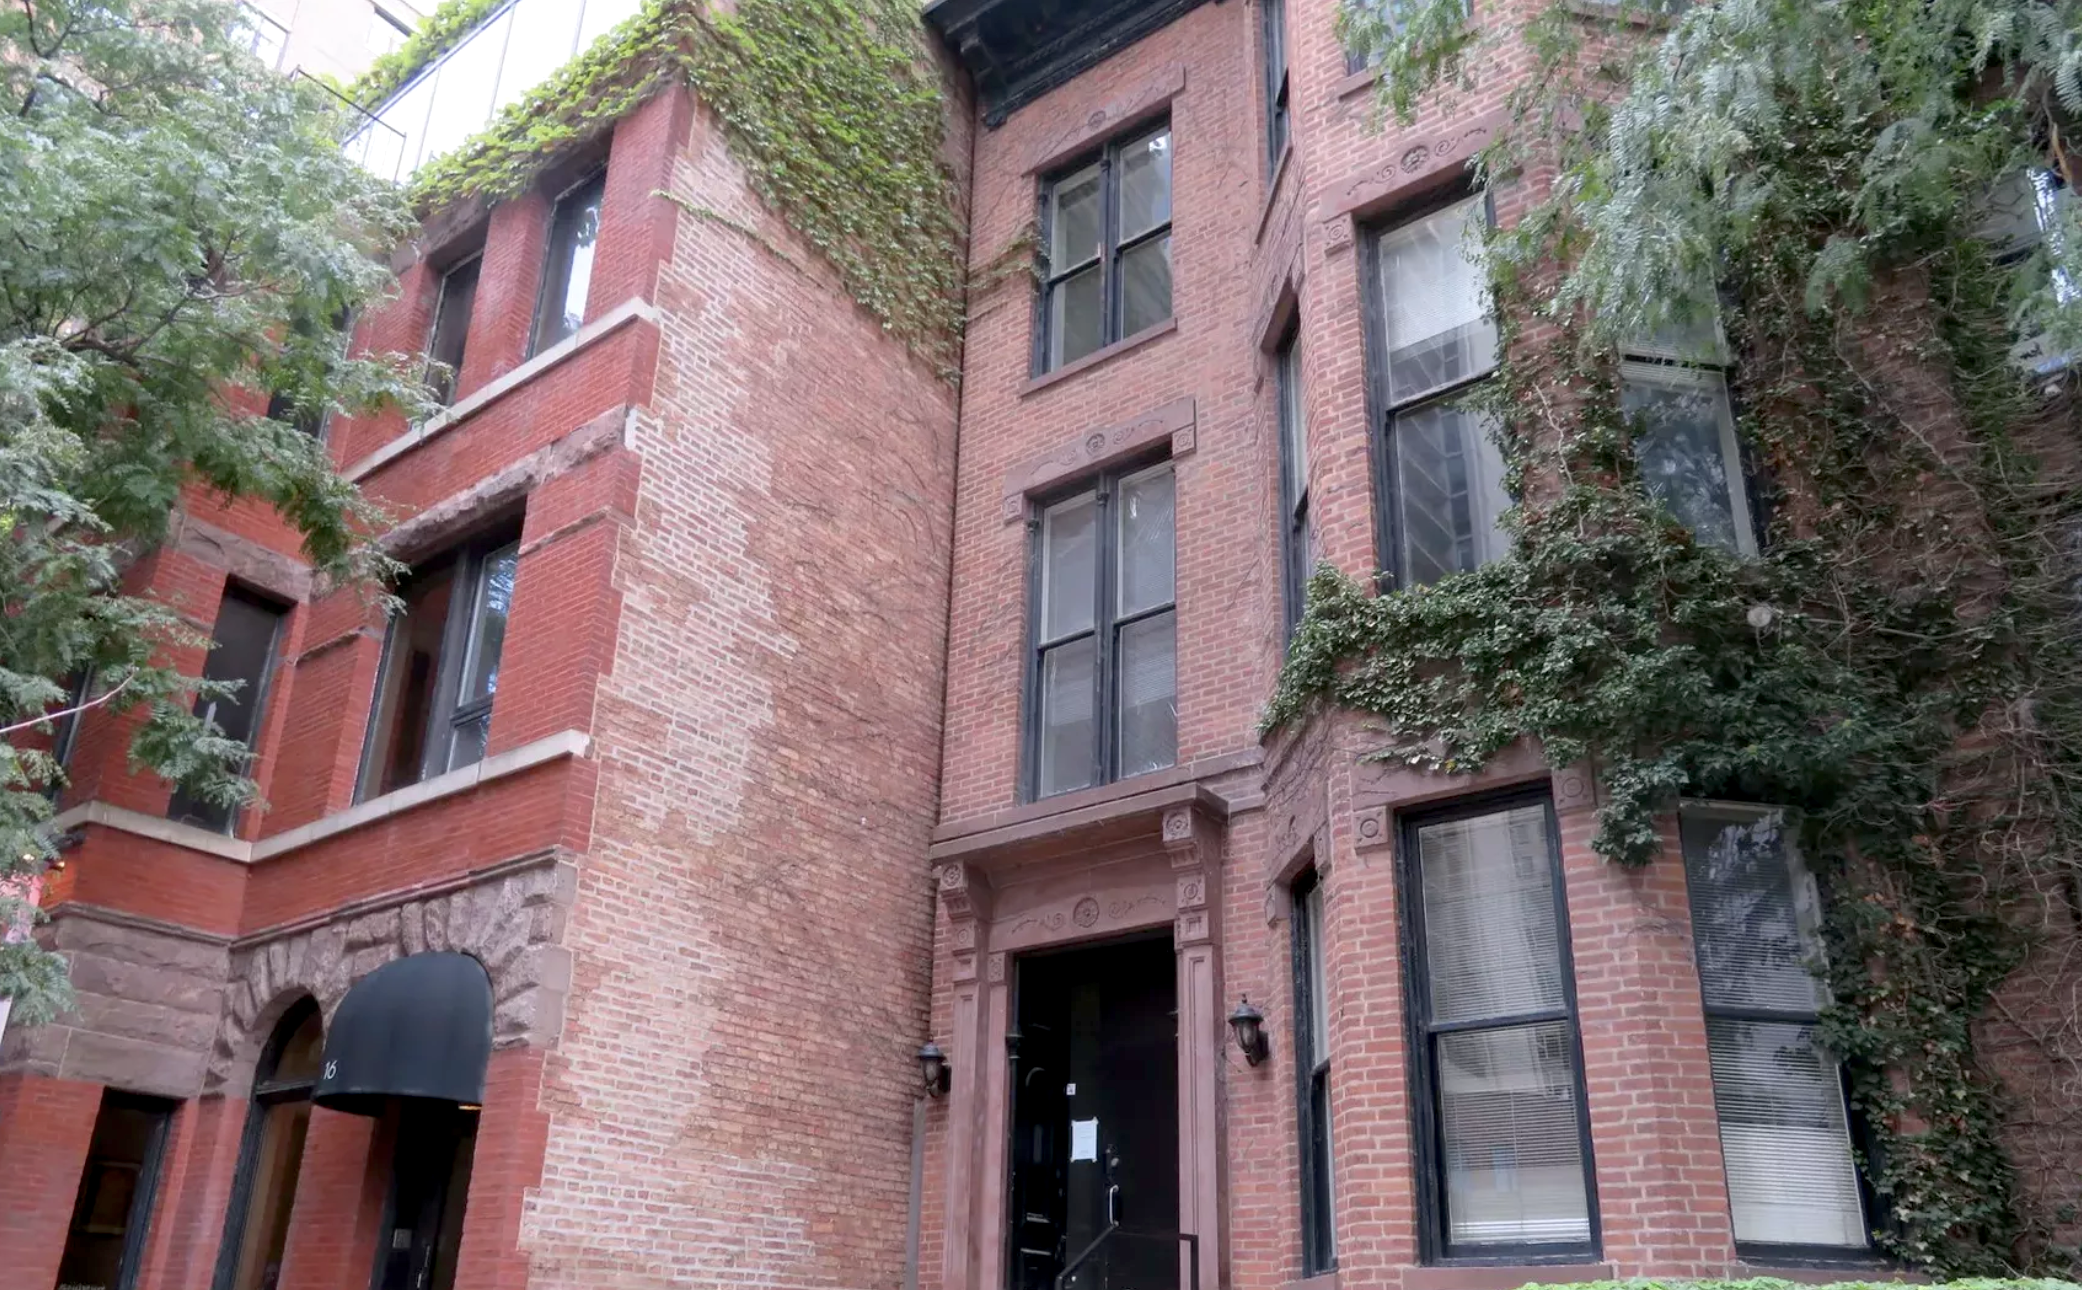 A red four-story brick row house covered by ivy.